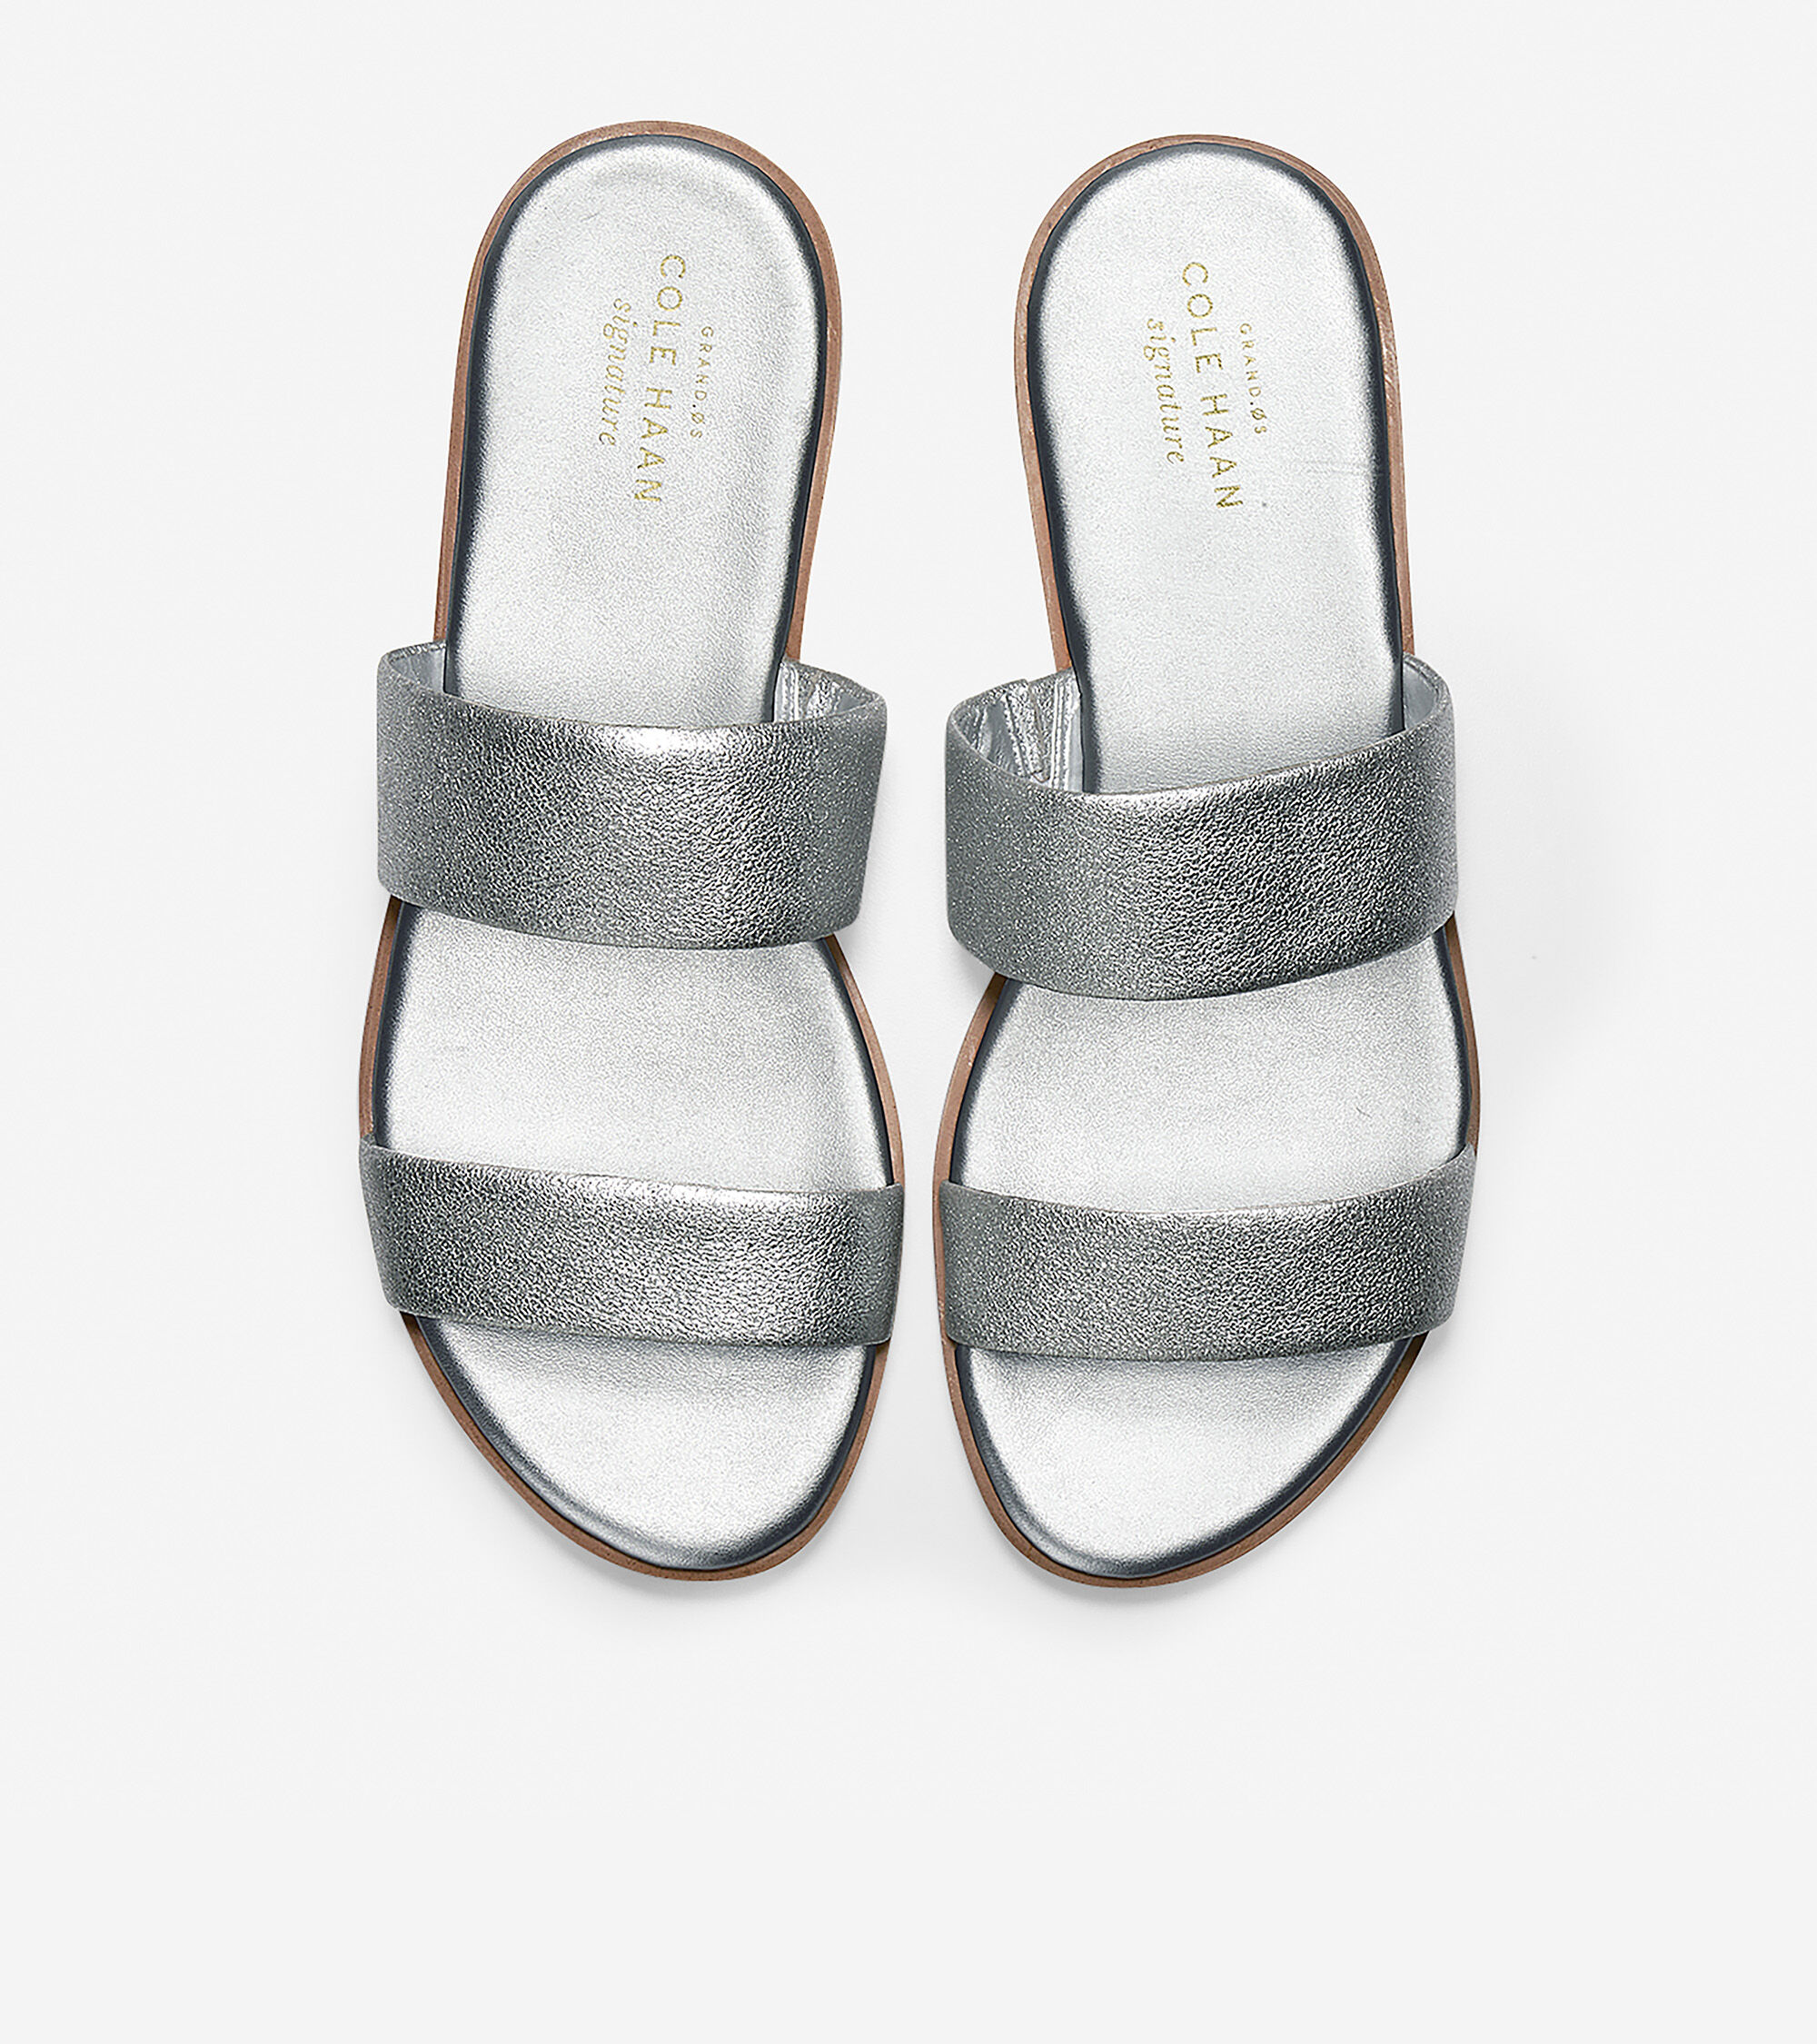 Findra Sandal in Silver Leather   Cole Haan